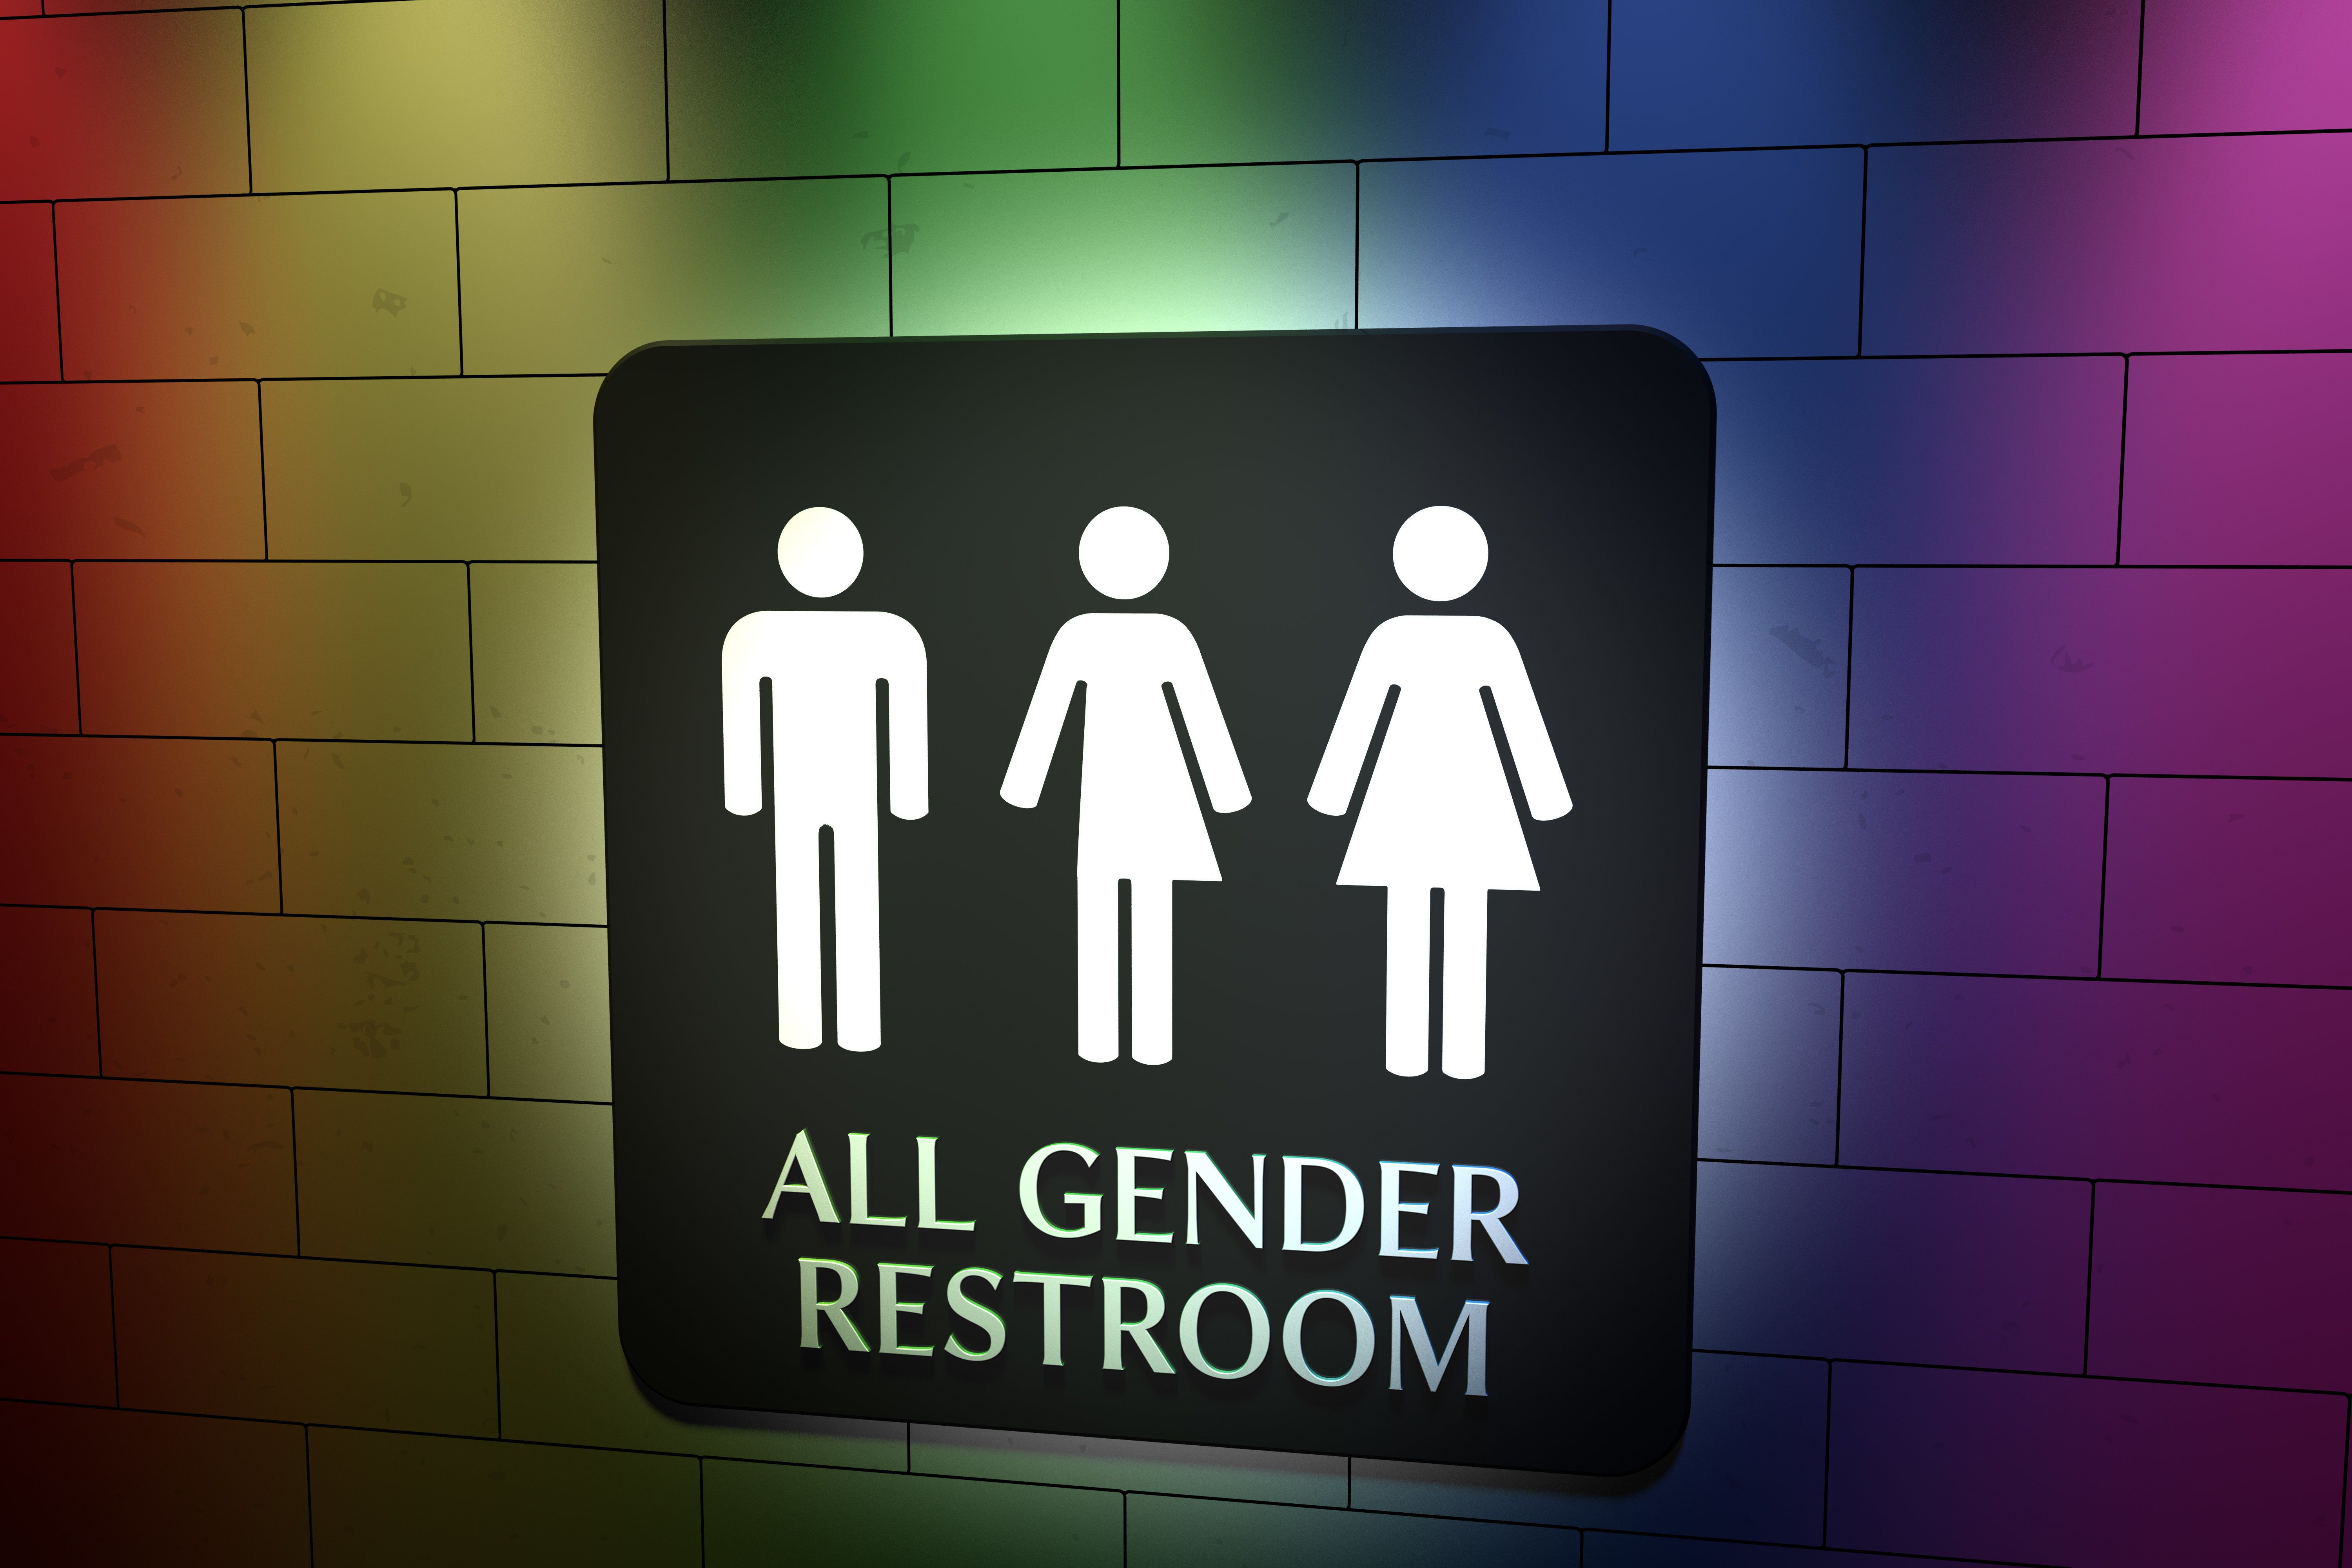 A sign on a wall for All Gender Toilets with symbols for men, trans and women. LGBT issue with pride coloured rainbow lights.